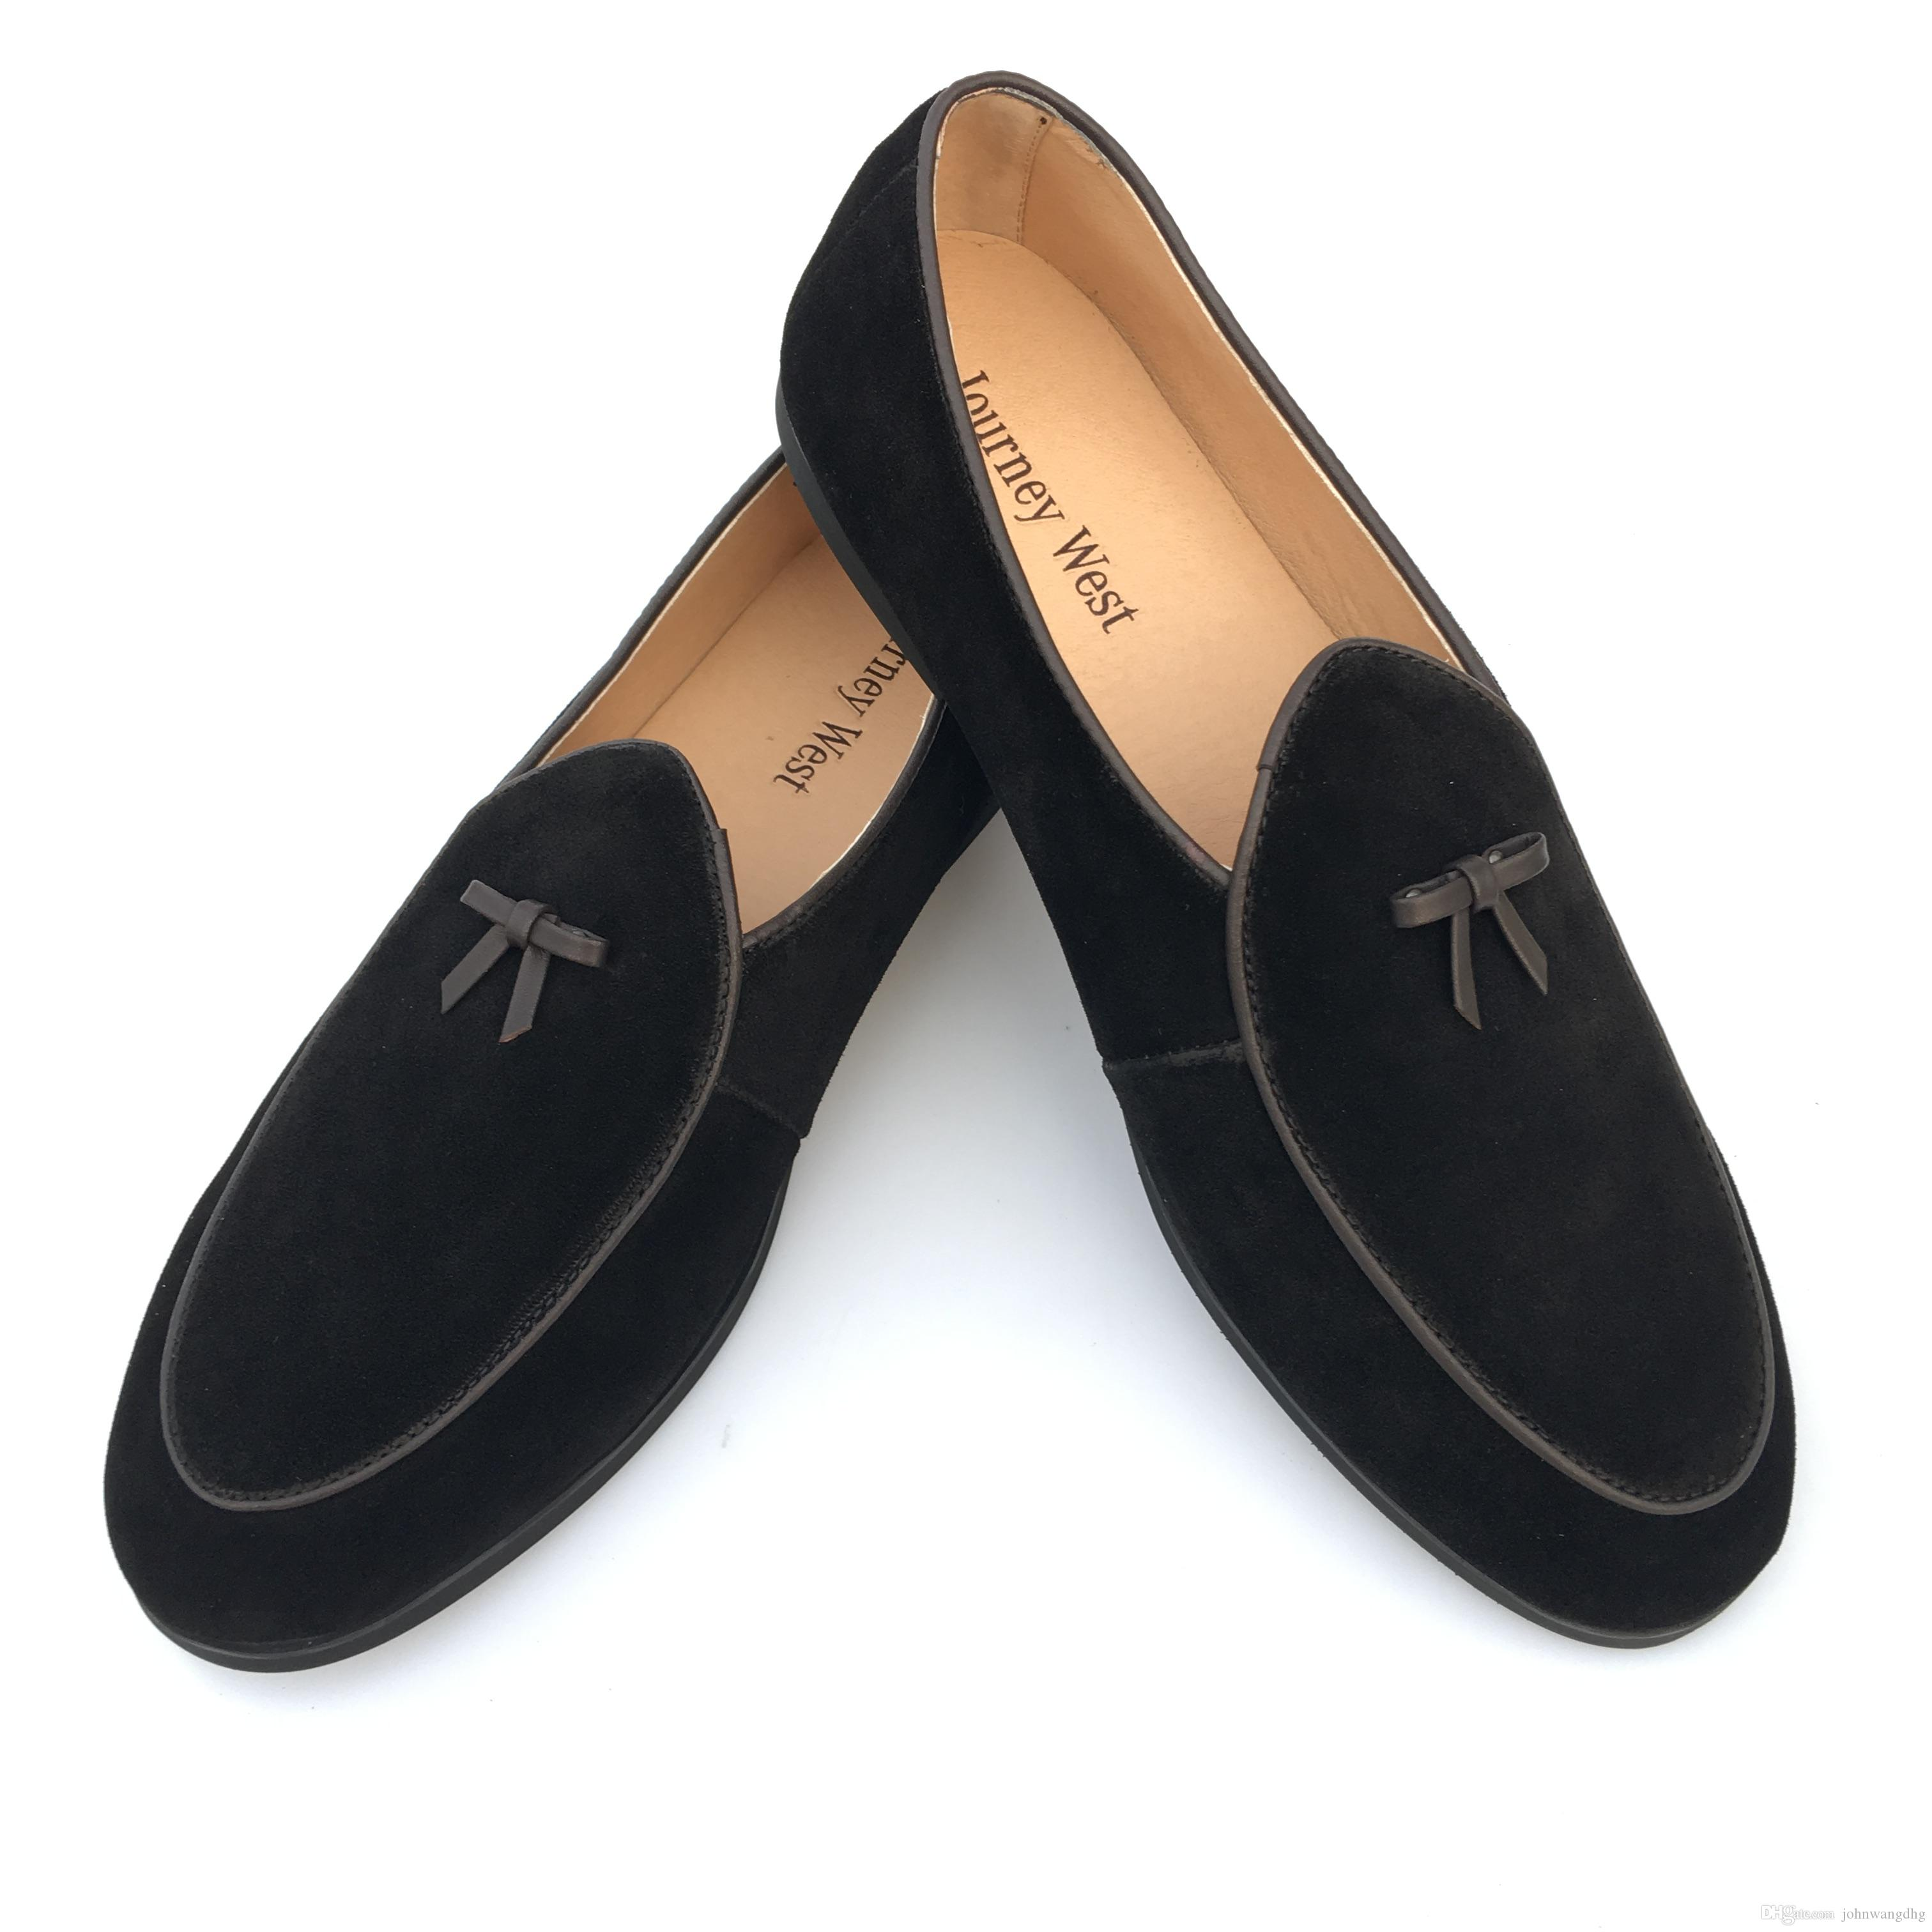 937653db7034fb New Fashion Mens Suede Leather Slippers Loafers Slip on Belgian Dress Shoes  Men's Flats With Bow Tie Black Brown Casual Shoes